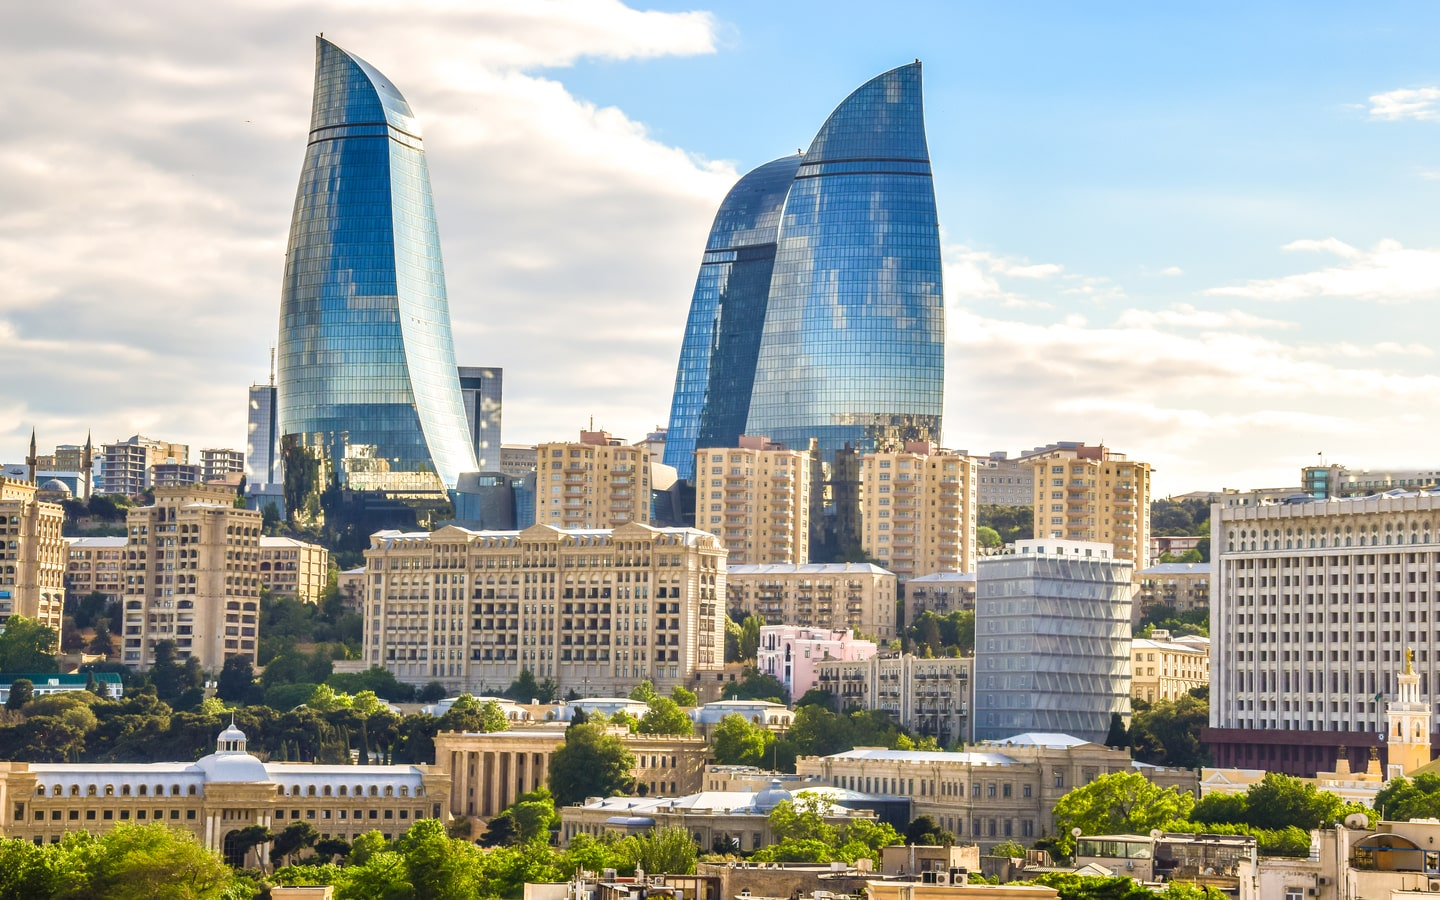 View of Baku City